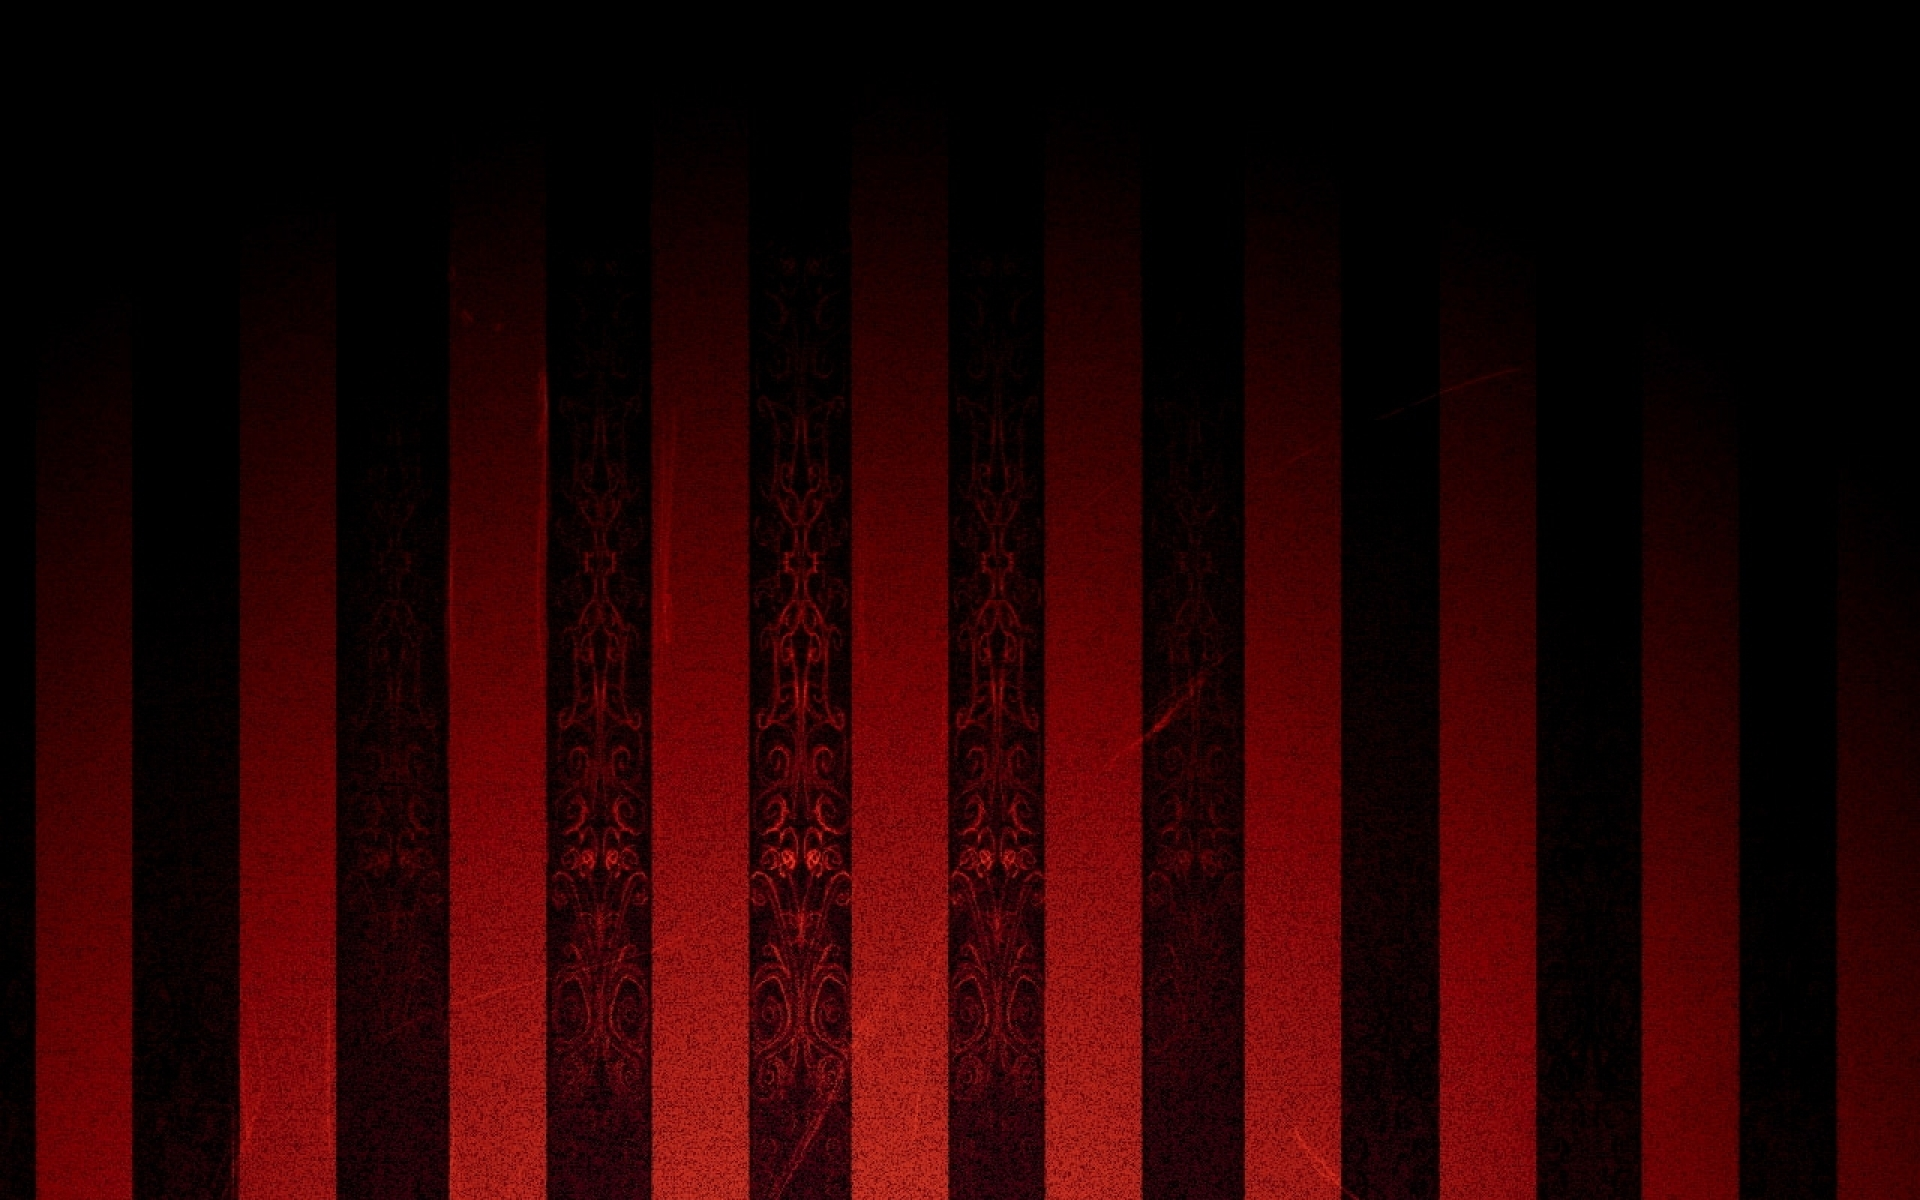 Iphone wallpaper black and red 1 cool wallpaper - Cool red and black wallpapers ...